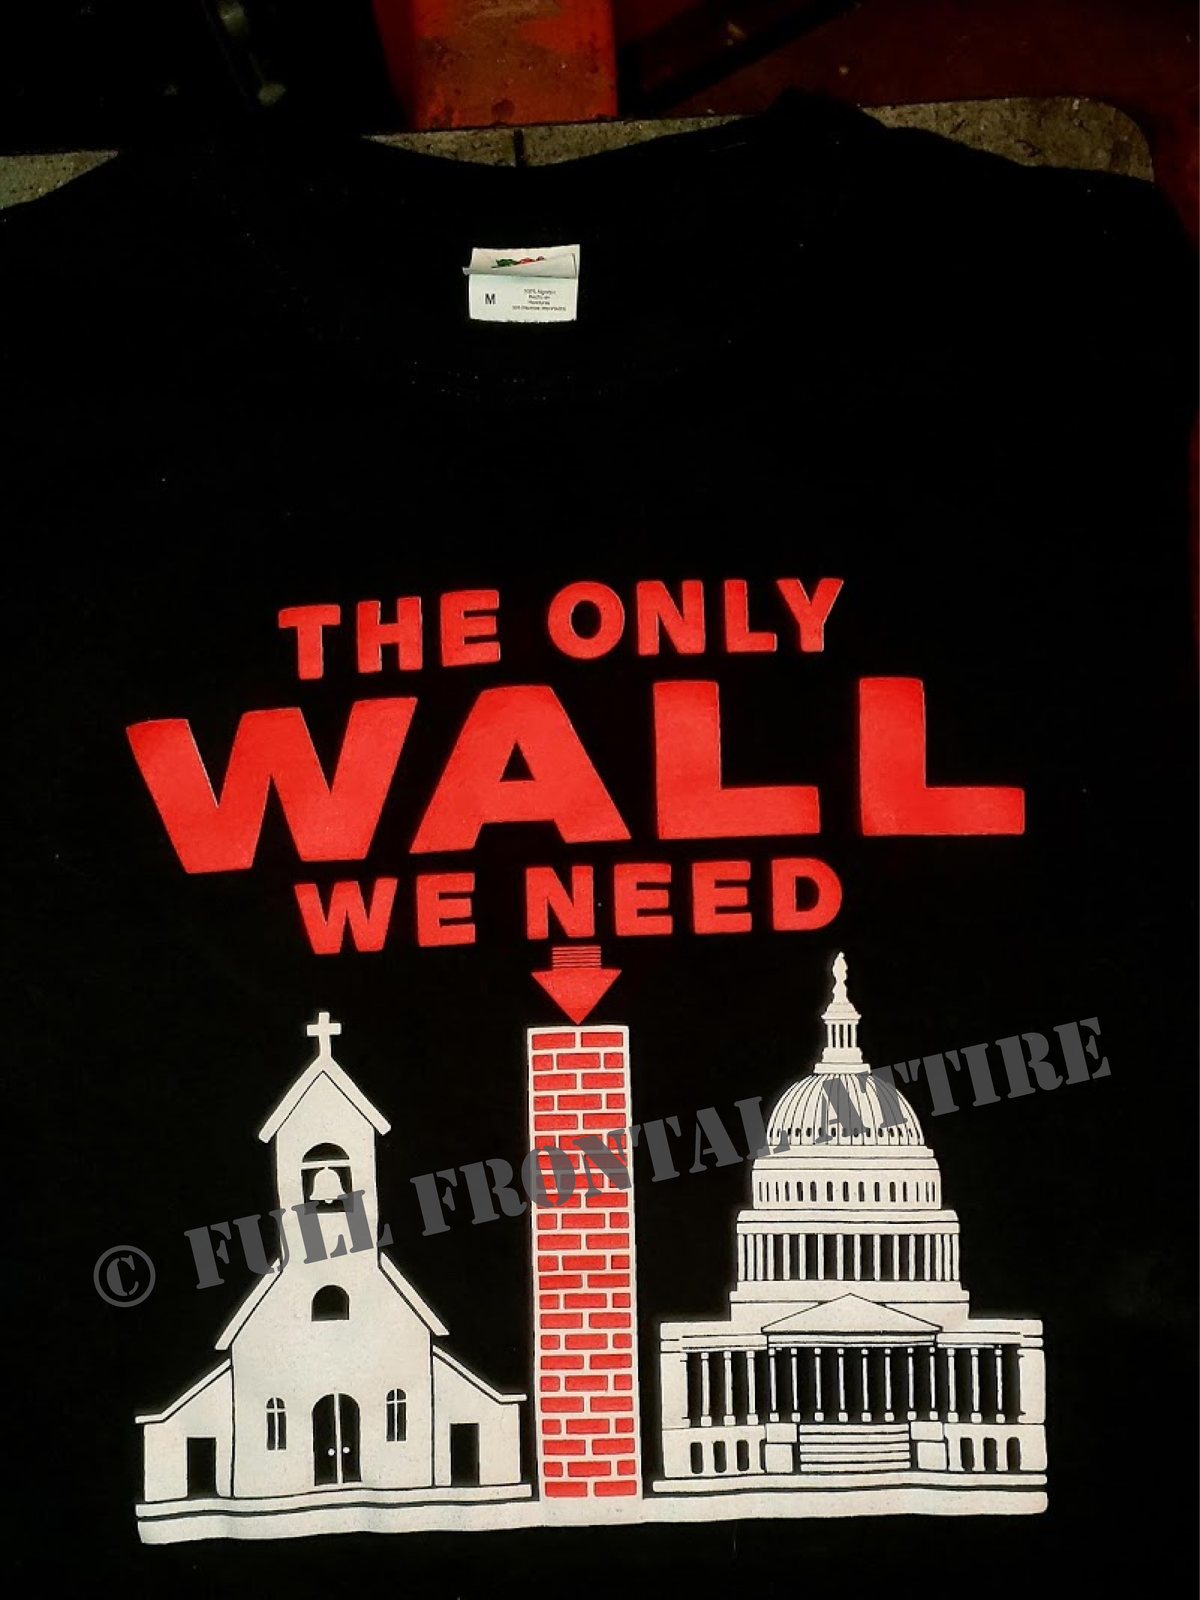 Image of BUILD THIS WALL #MAGA SHIRT